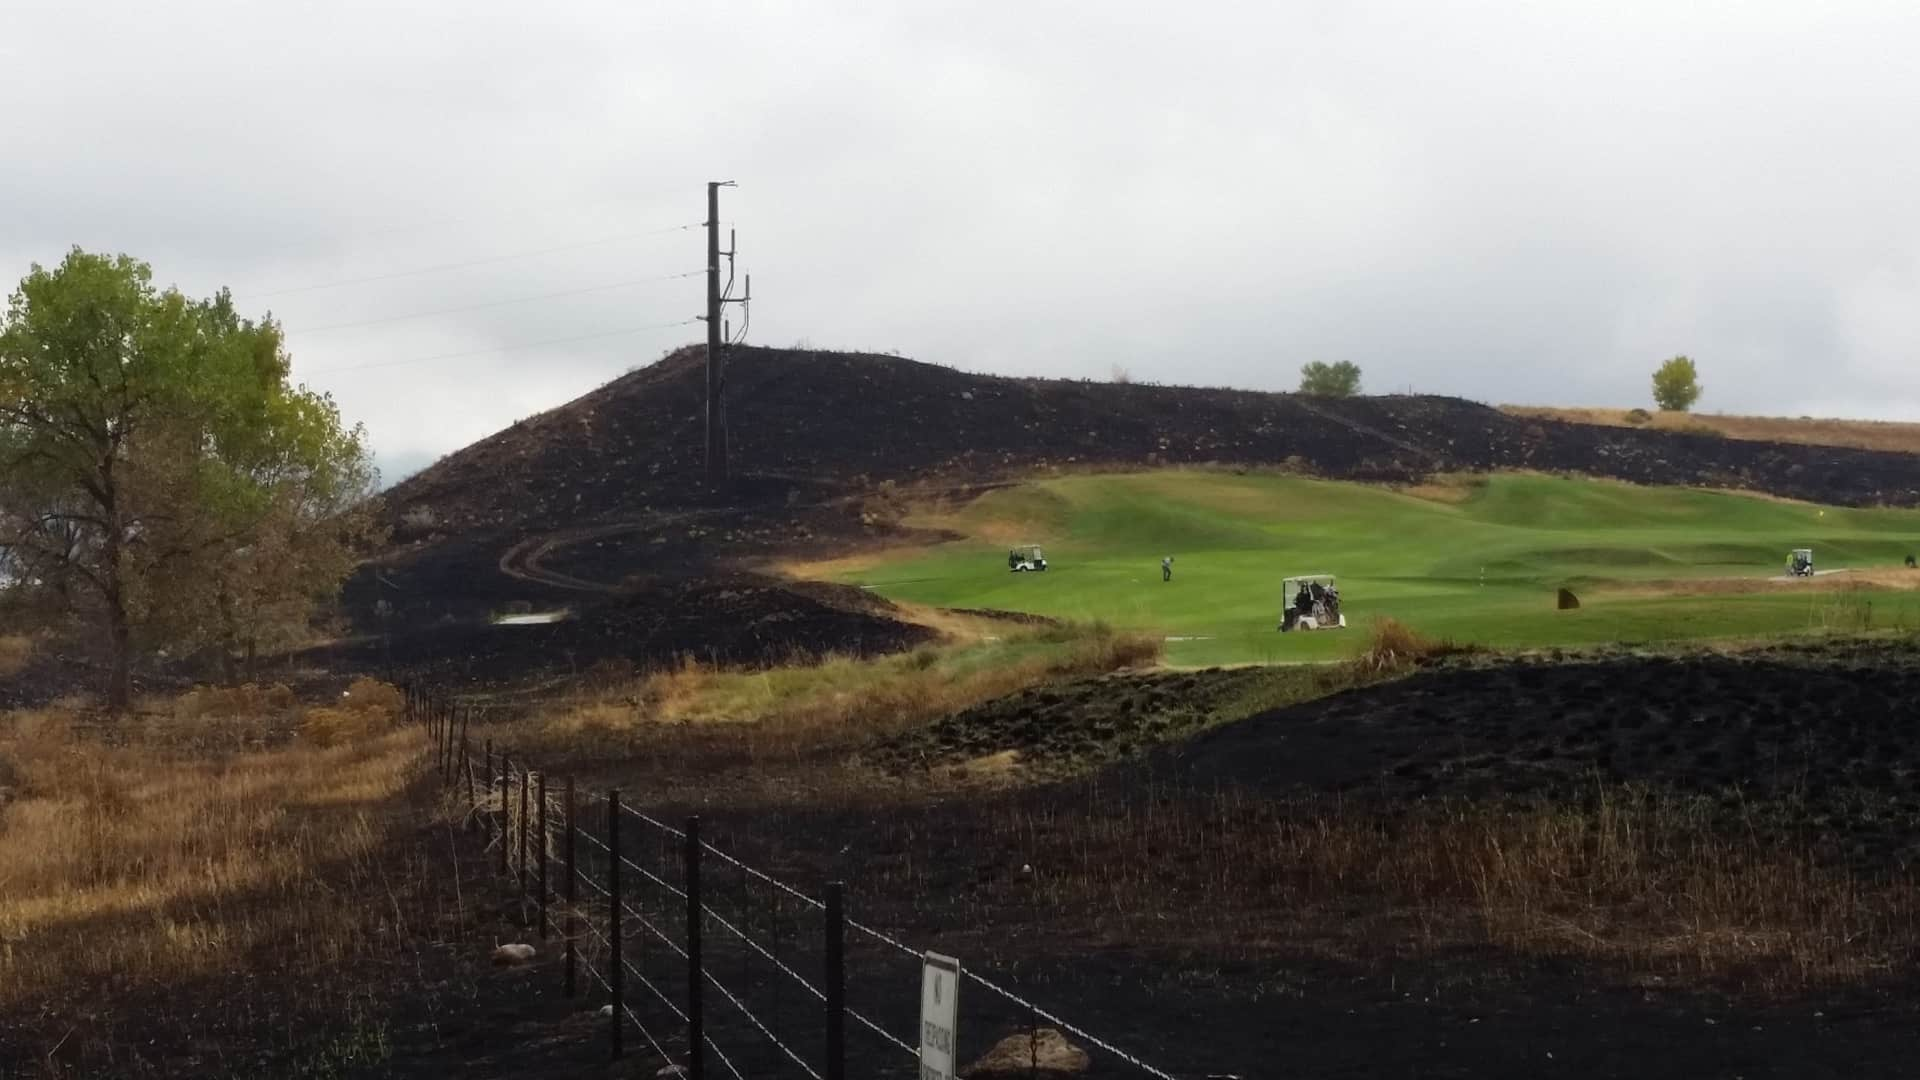 Golf carts travelling on a golf course, the outline of which also marks the boundary of a recent wildfire.